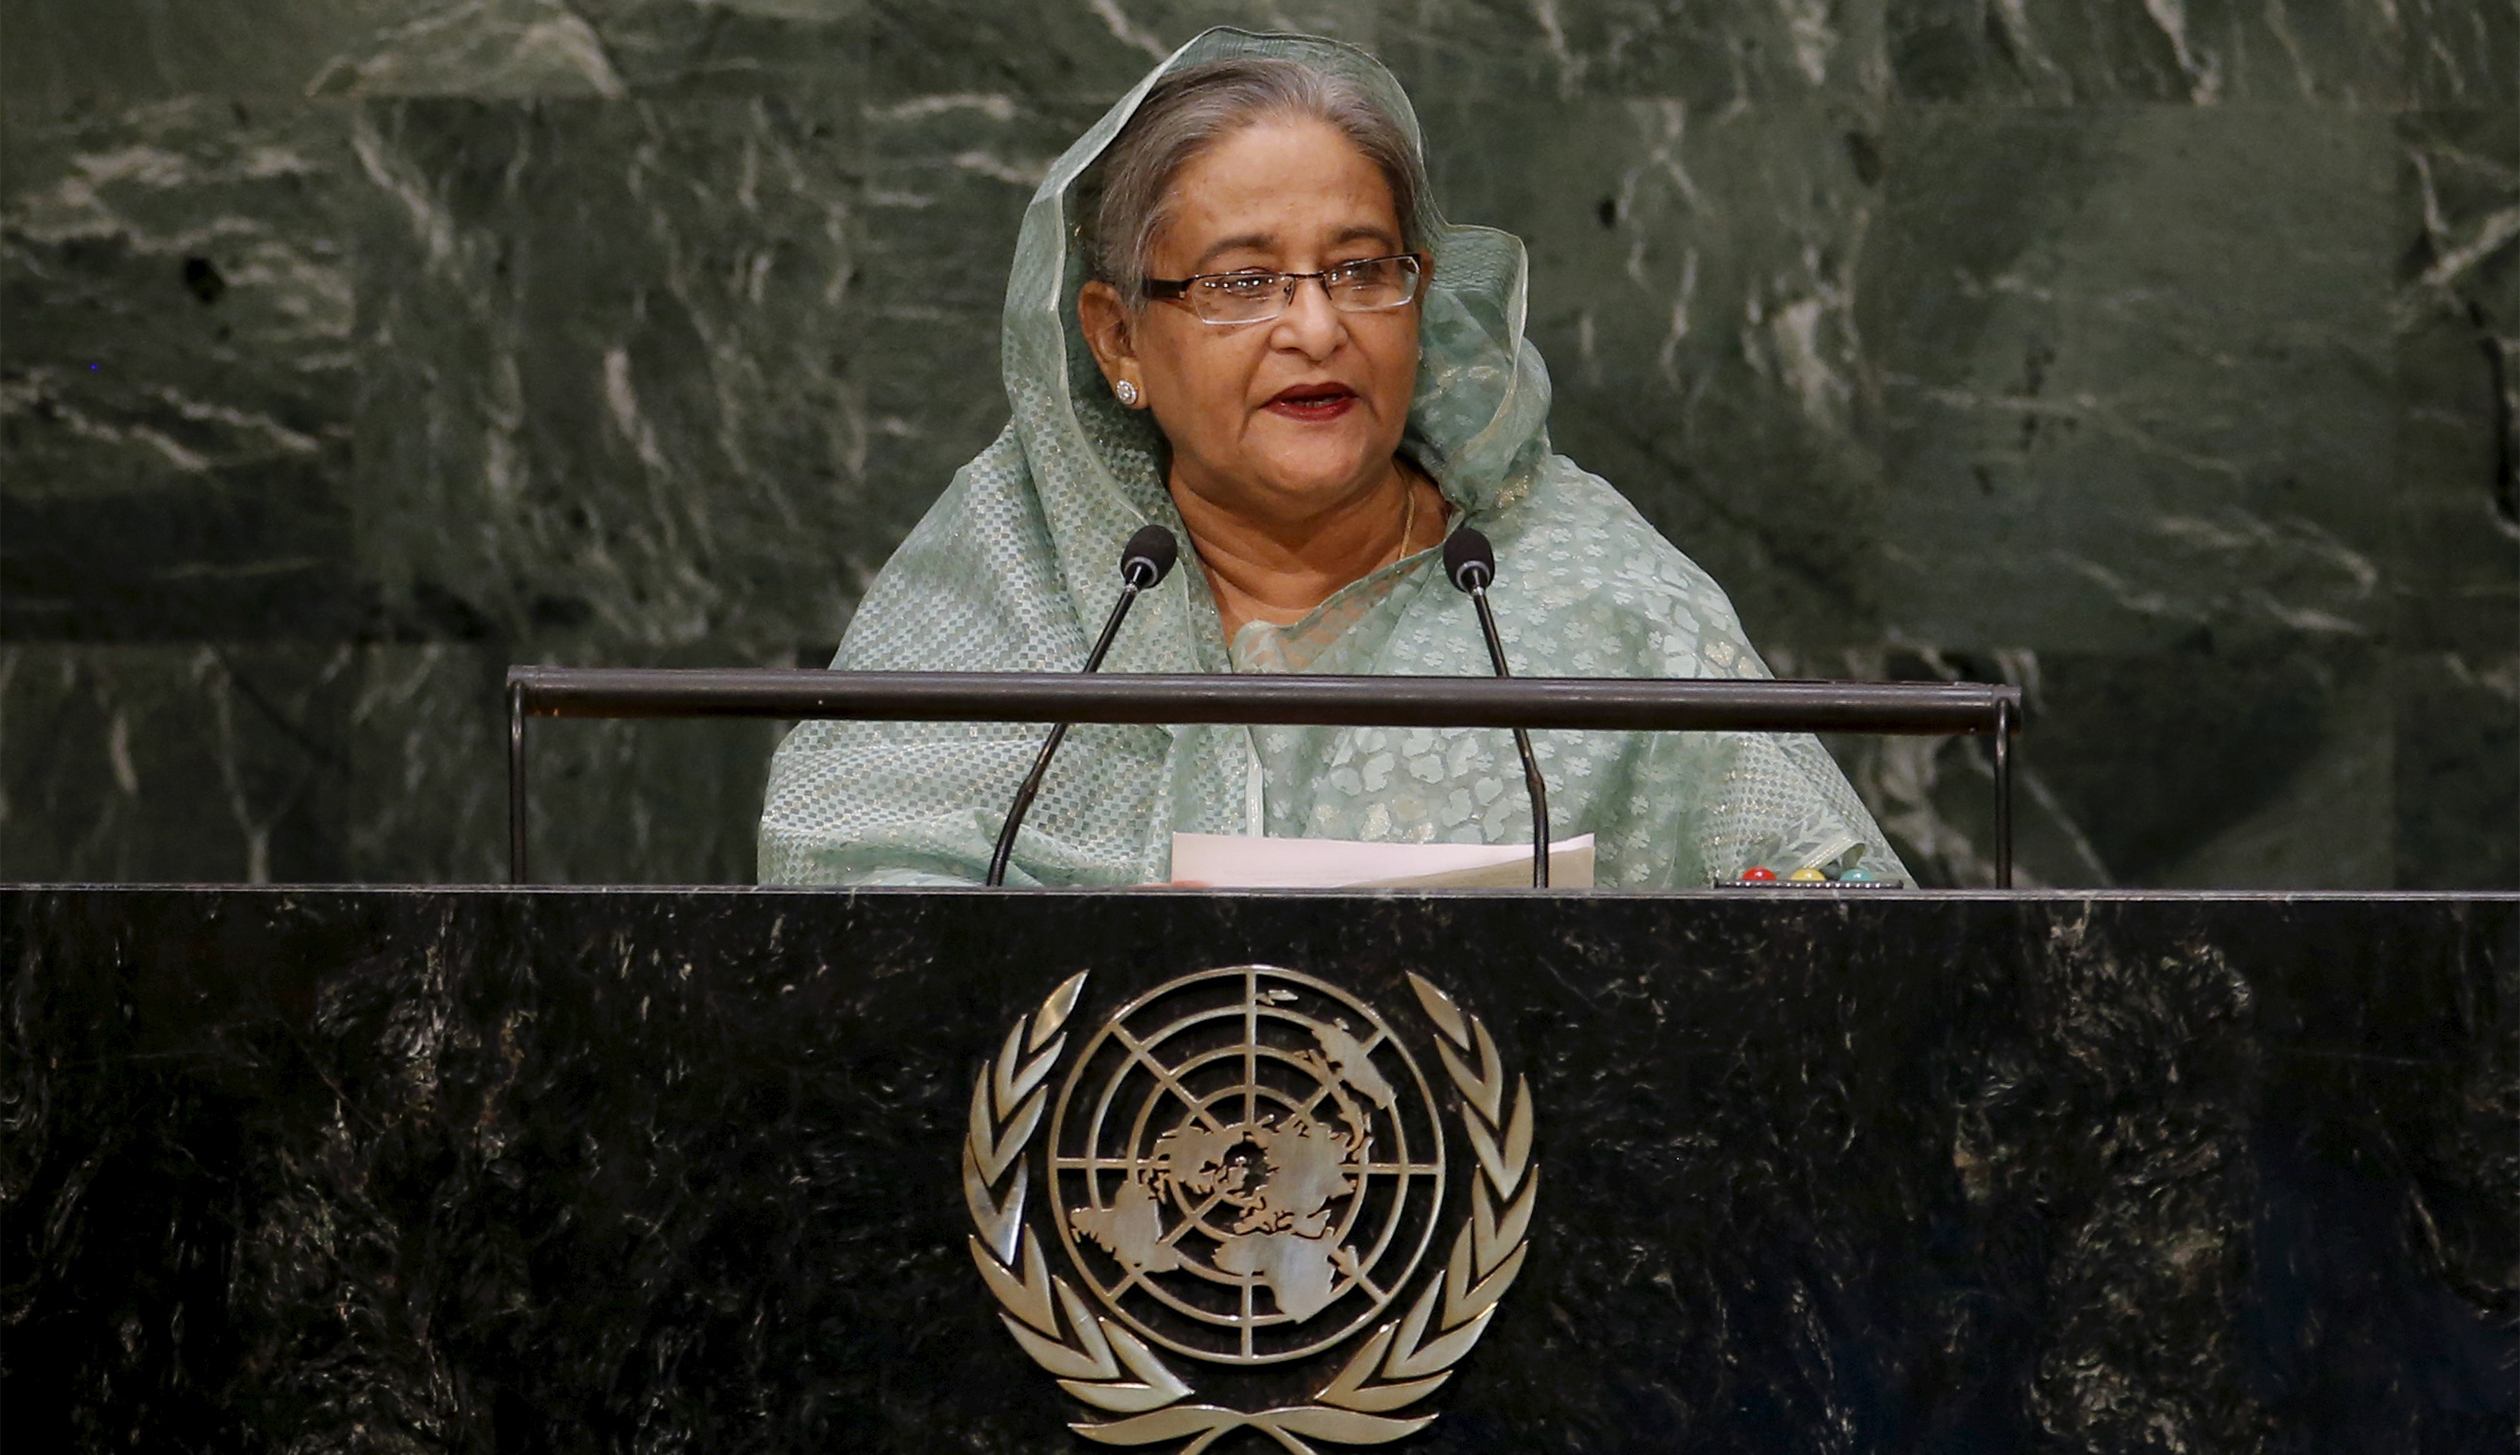 Bangladesh's Prime Minister Sheikh Hasina addresses a plenary meeting of the United Nations Sustainable Development Summit 2015 at the United Nations headquarters in Manhattan, New York